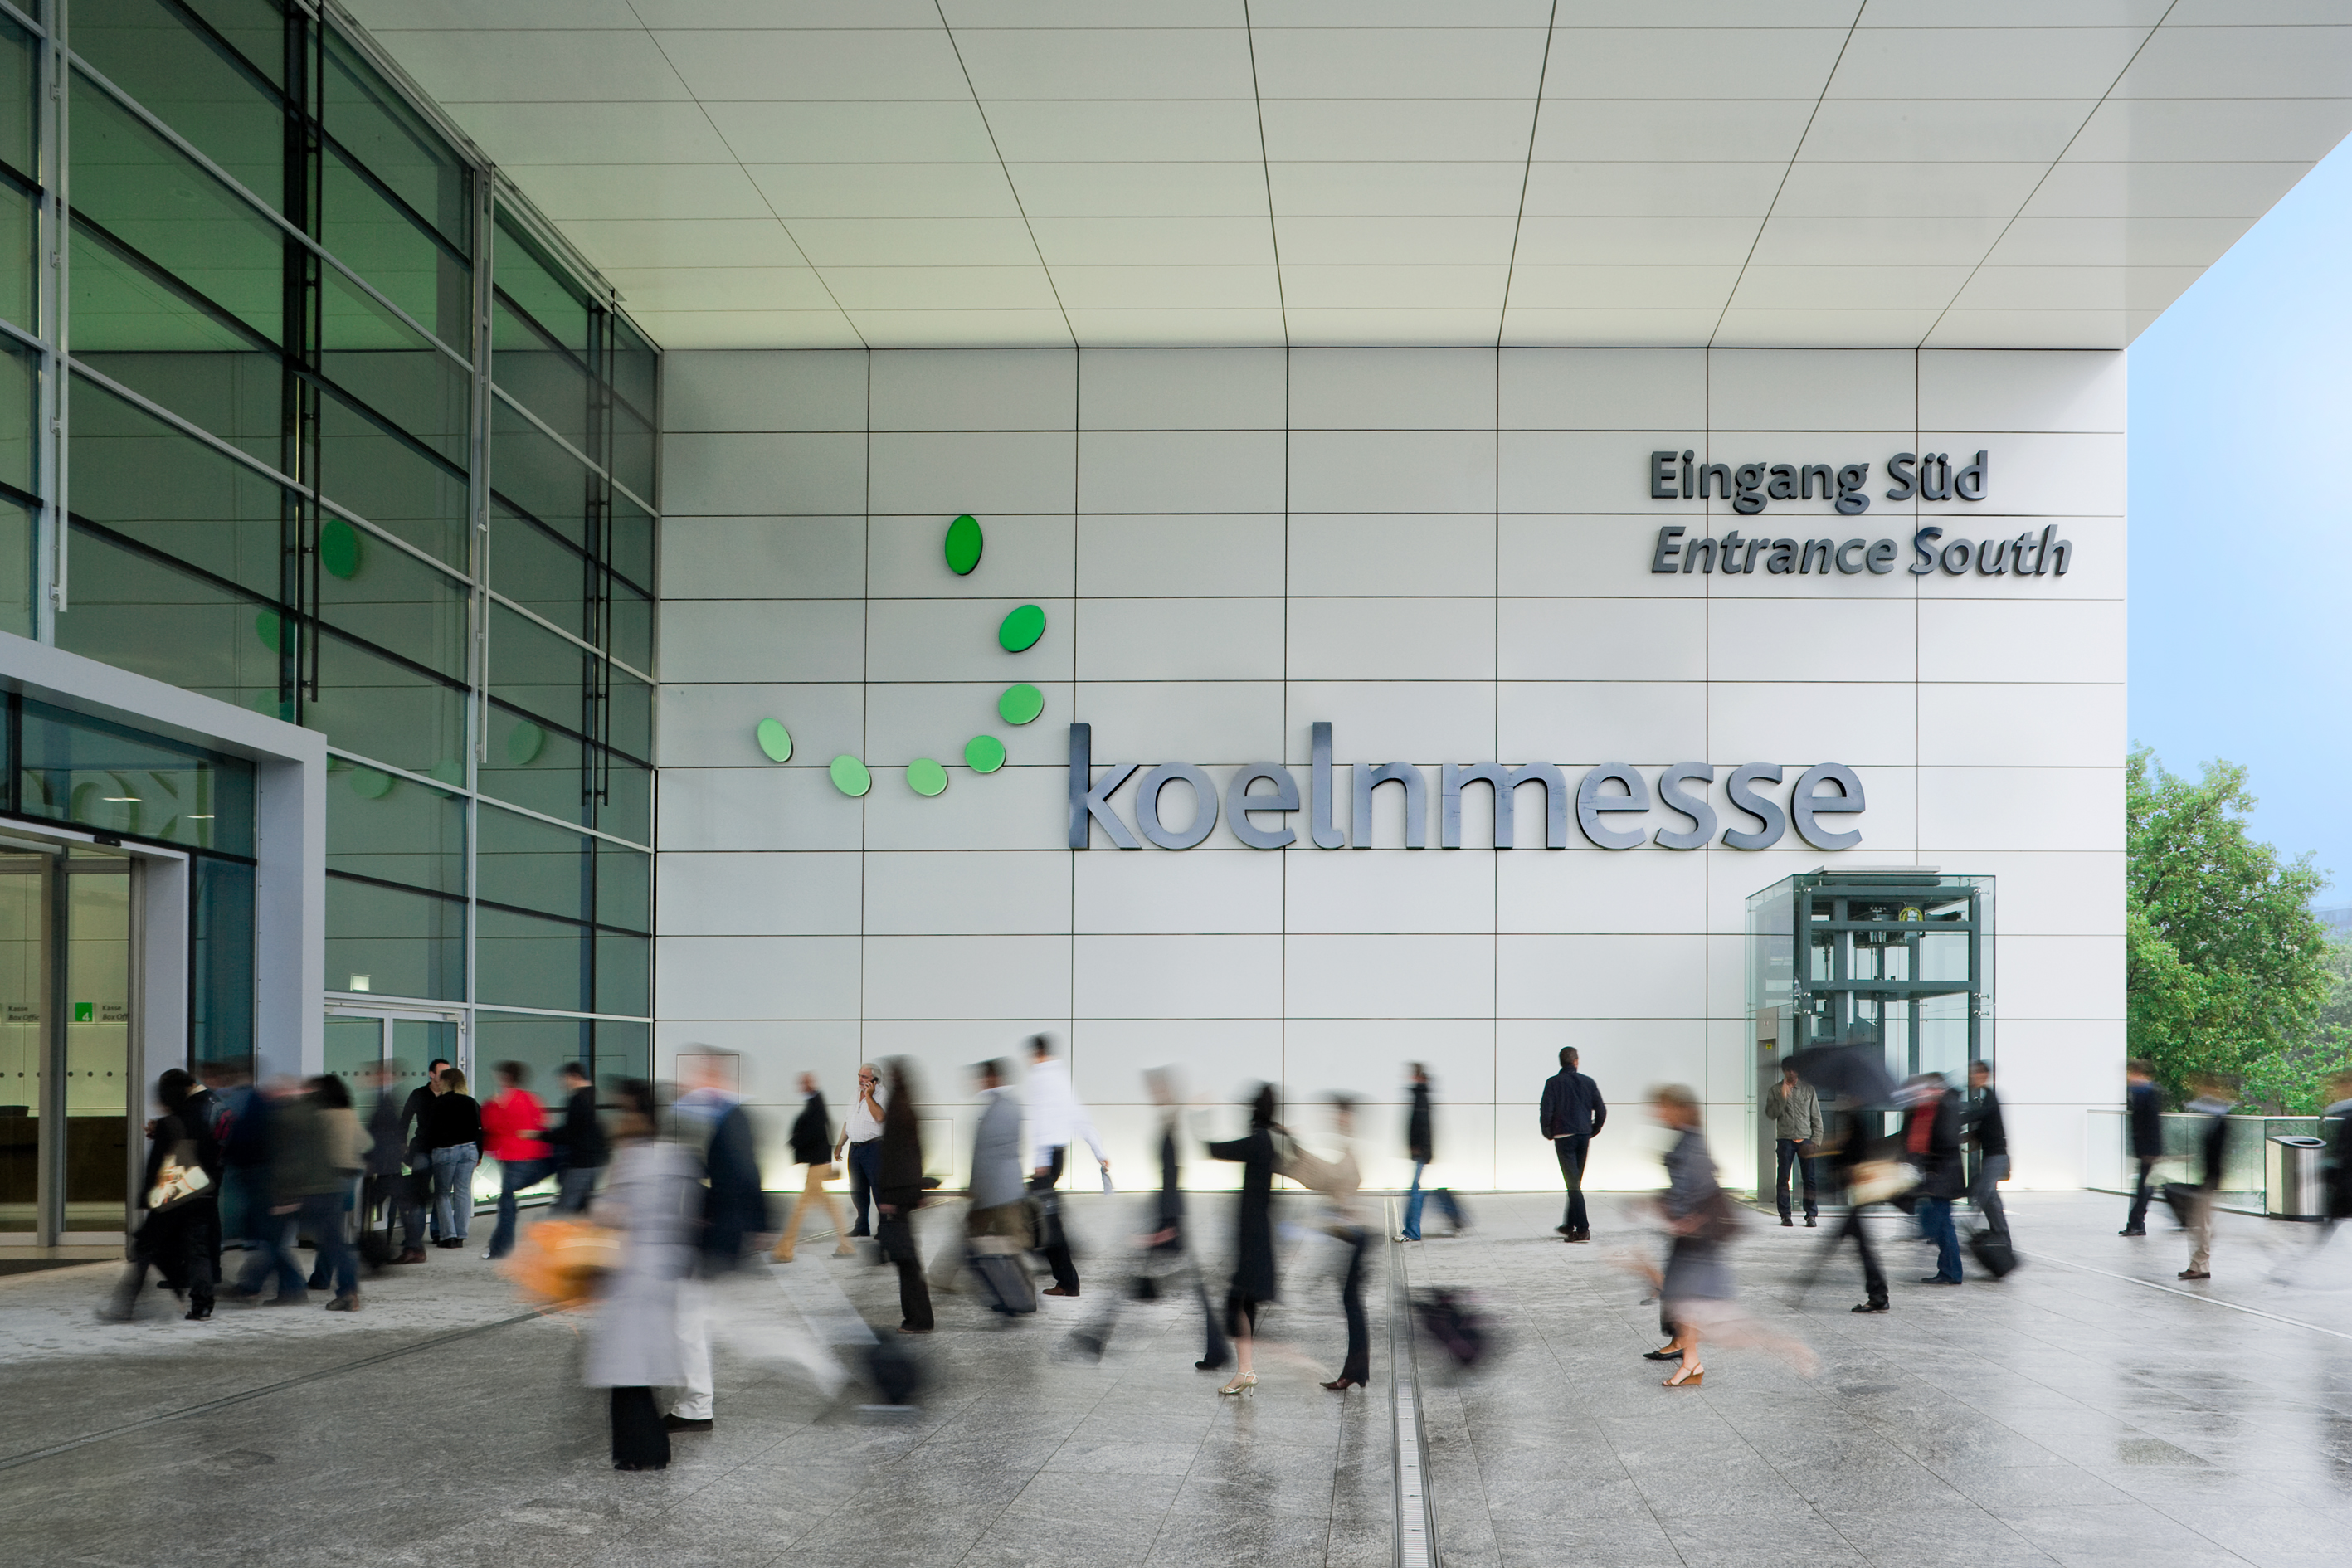 Koelnmesse Entrance South